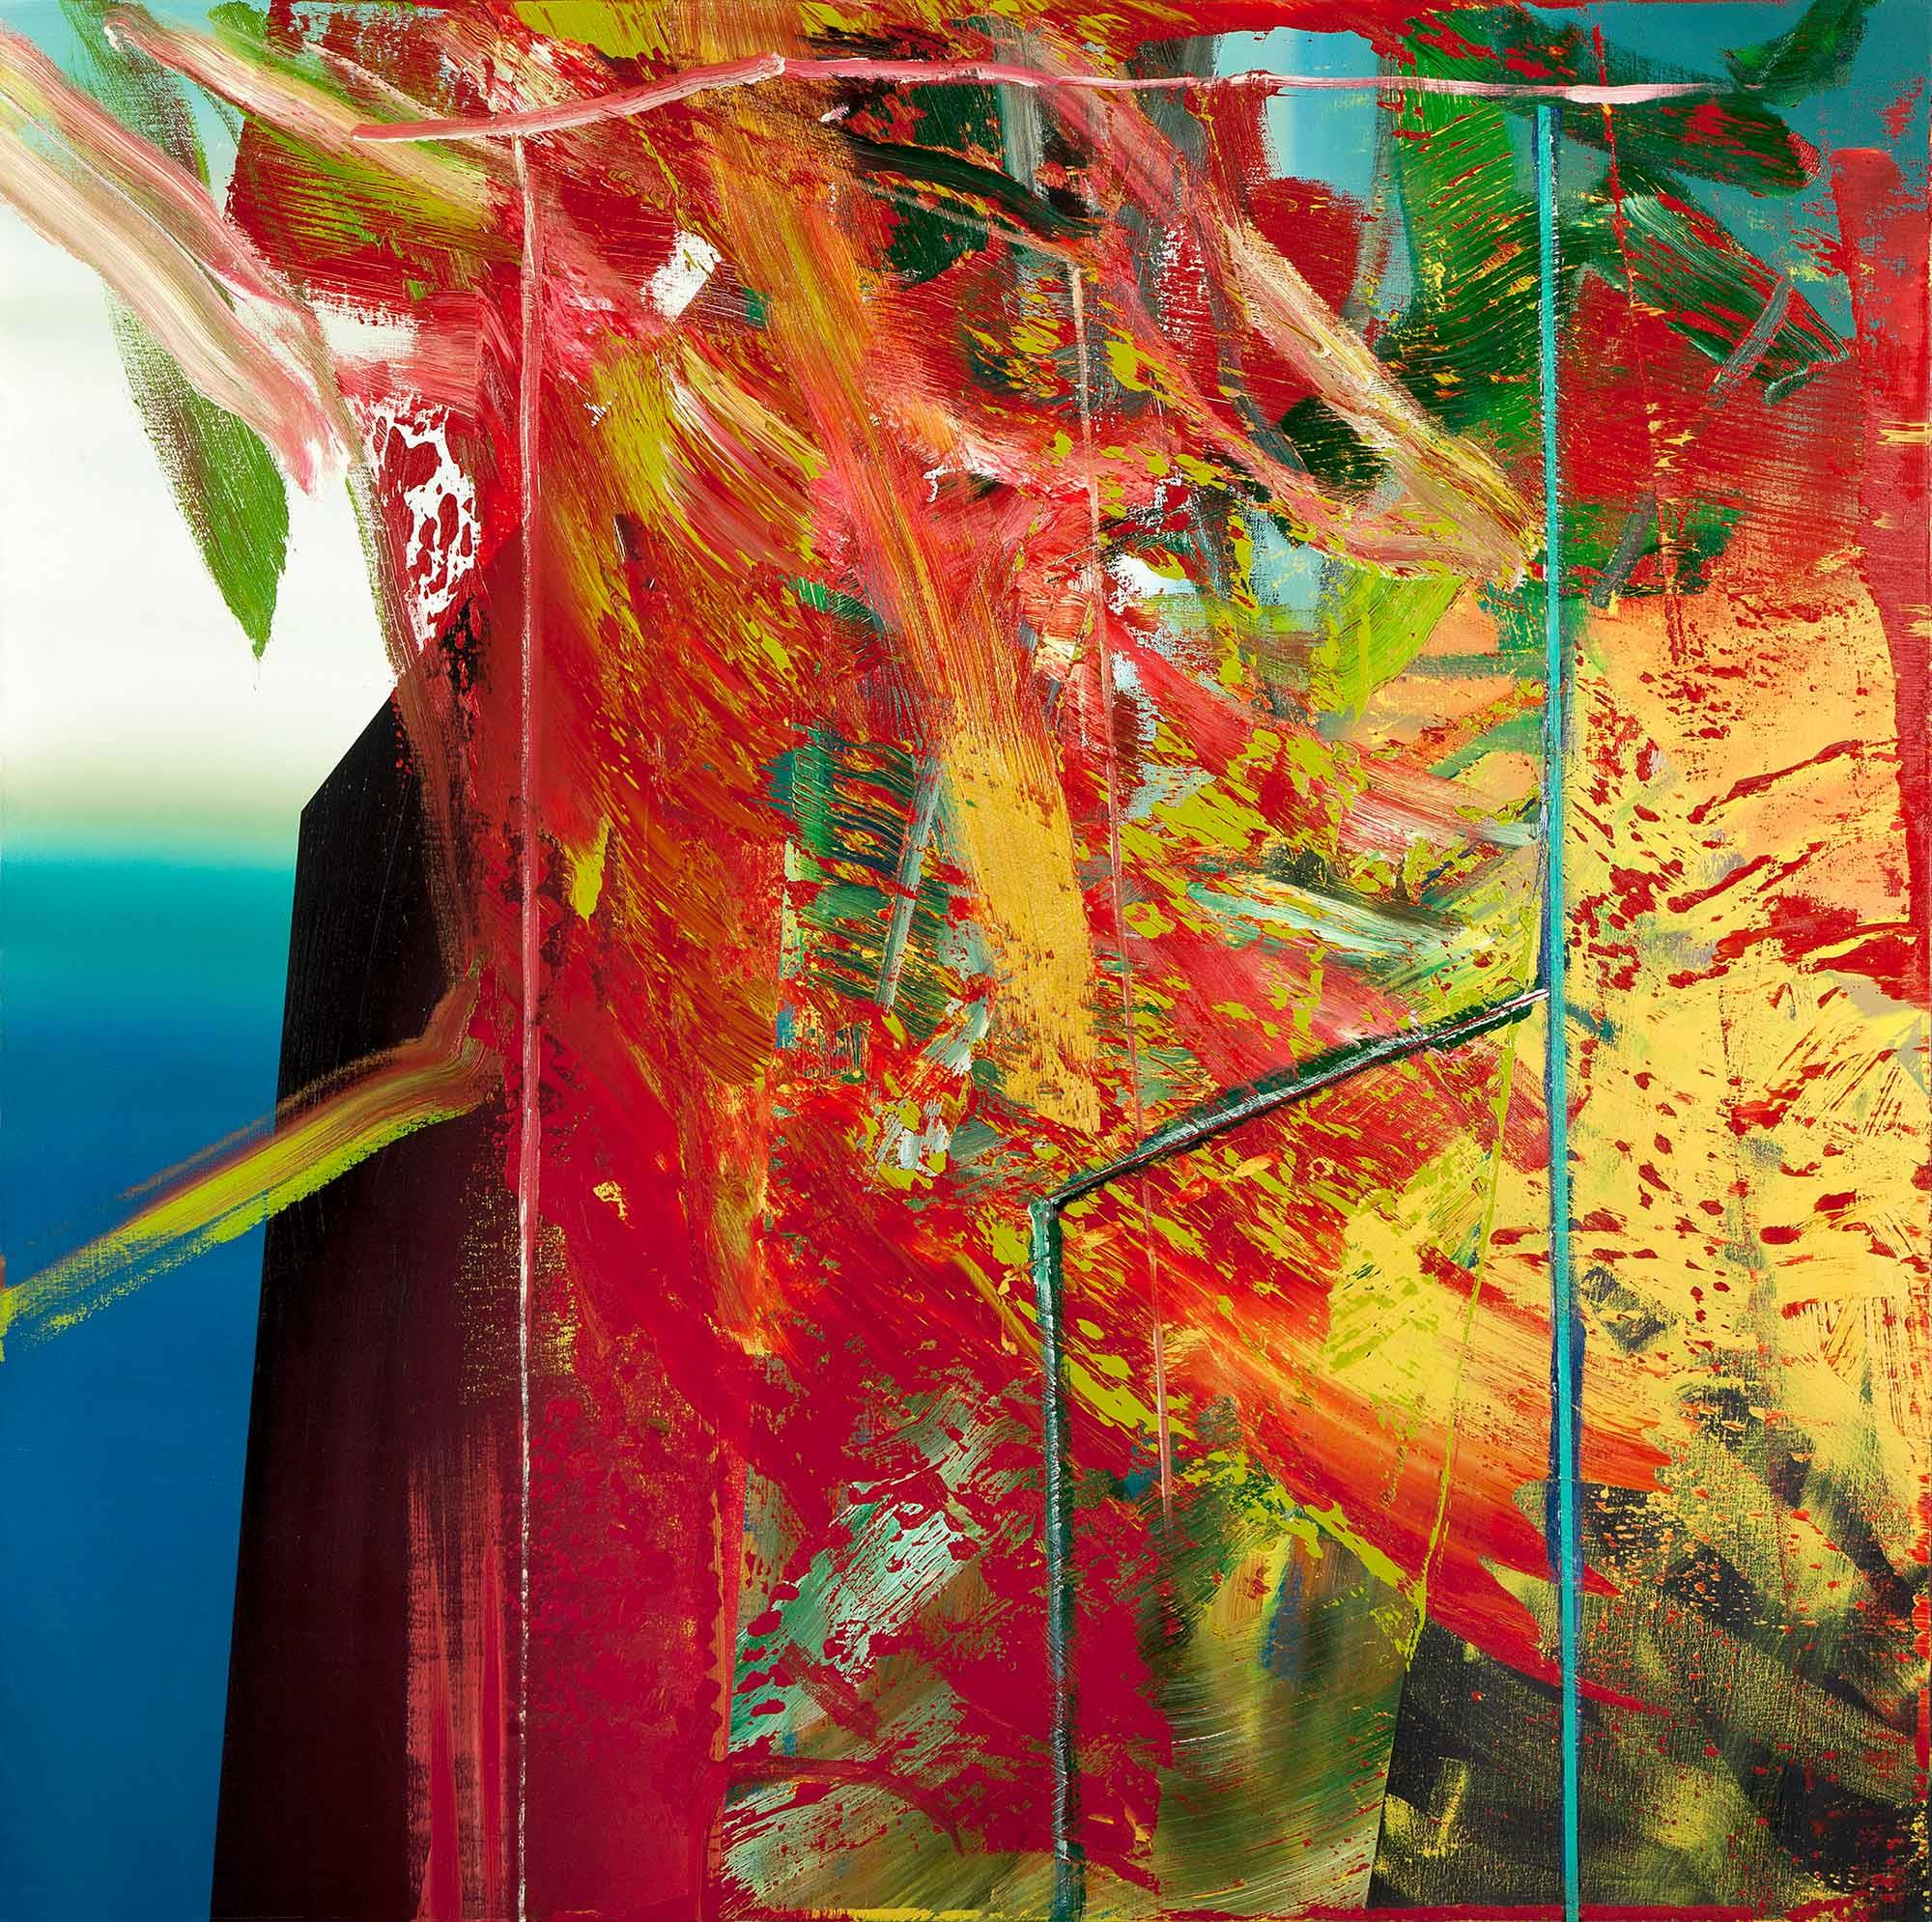 Abstrakte Bilder Gerhard Richter Phillips S 95 Million Gerhard Richter Exhibition Artnet News